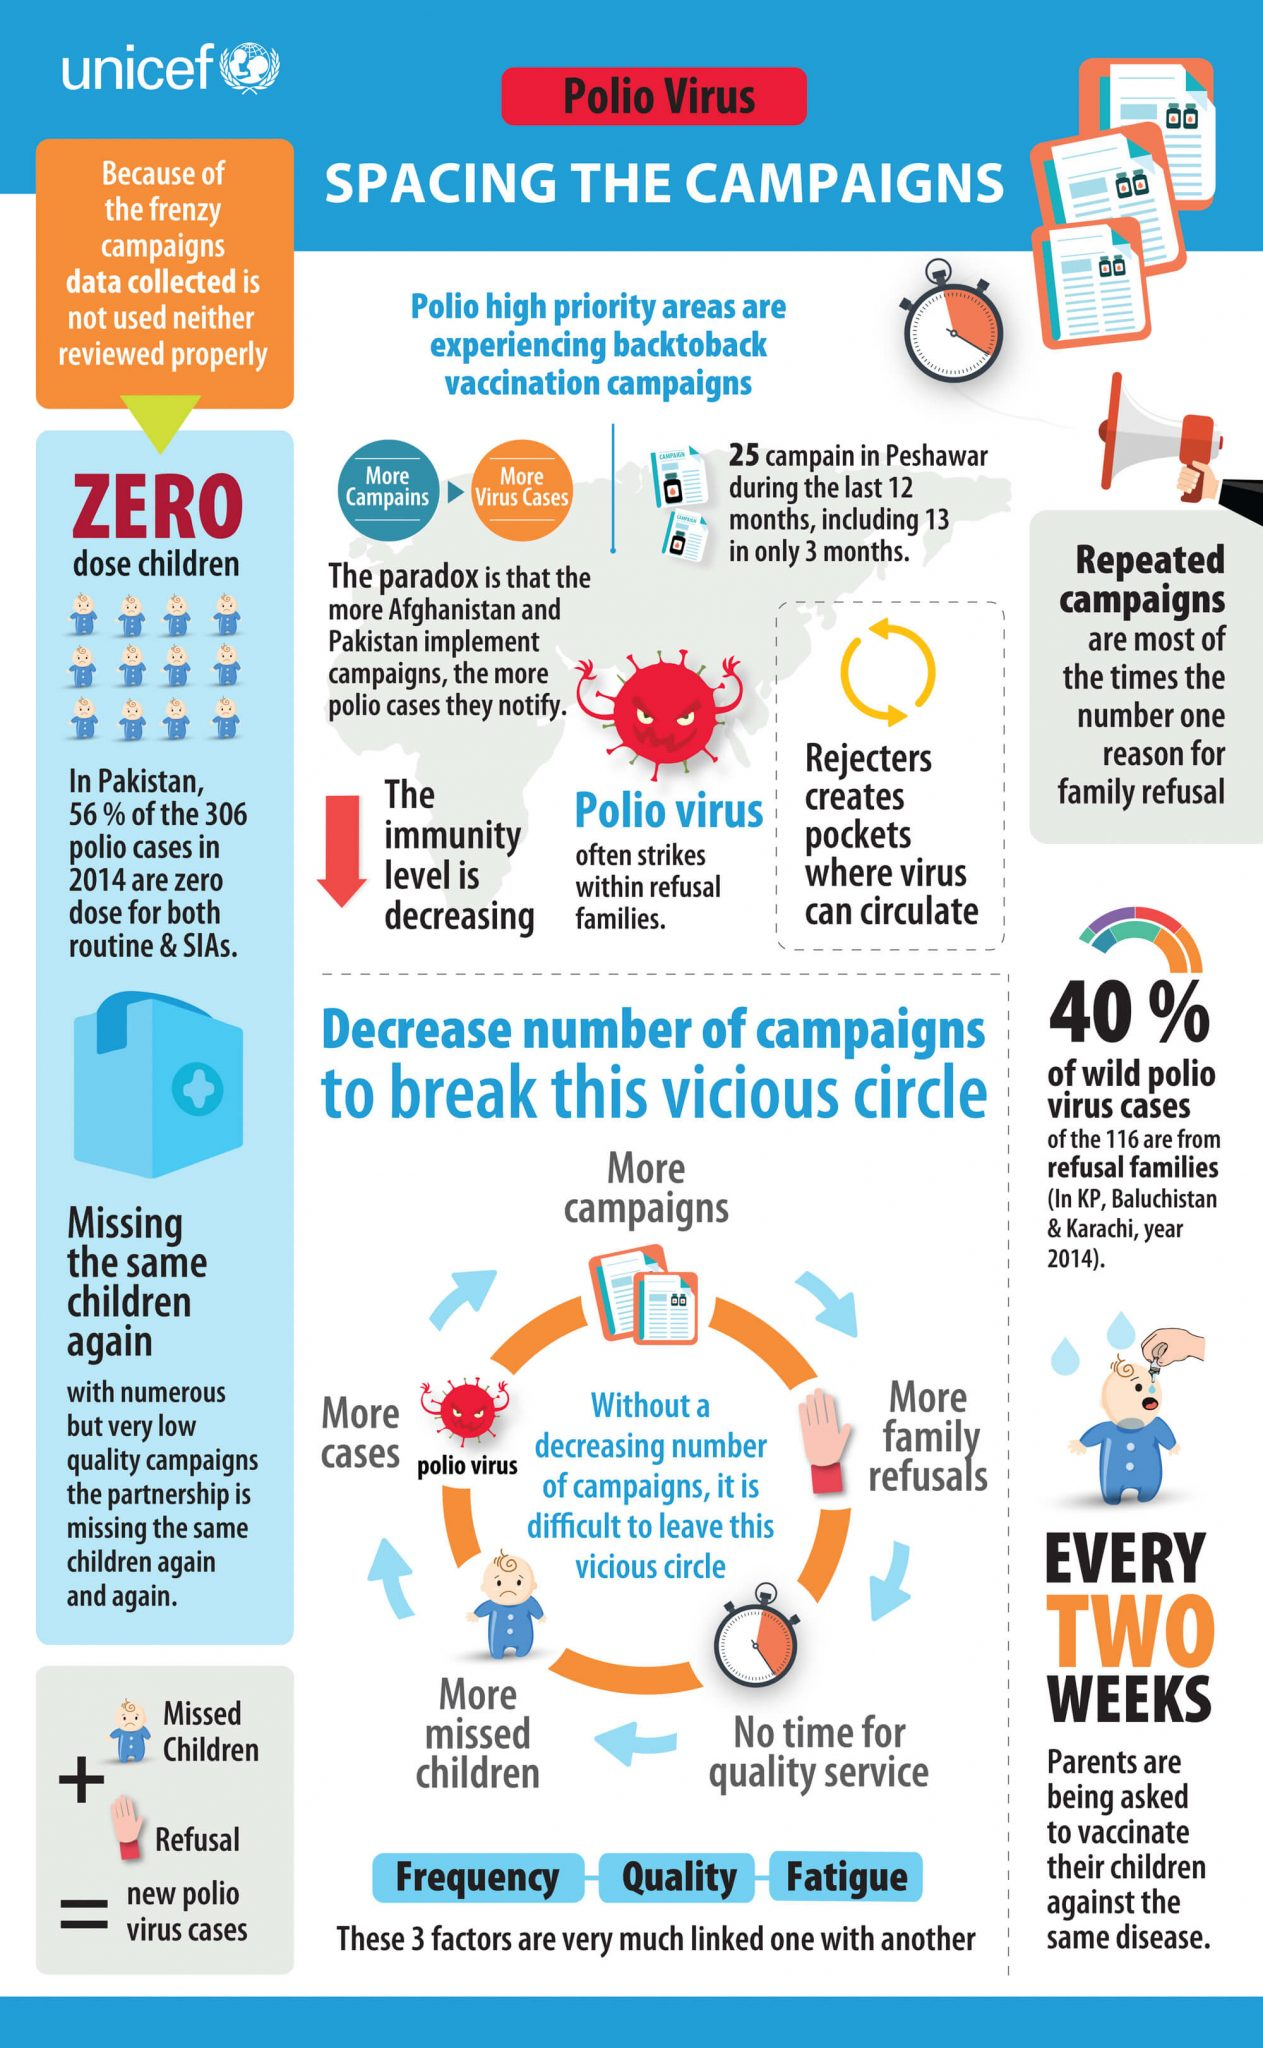 UNICEF Pakistan 'Spacing the campaigns' Infographic